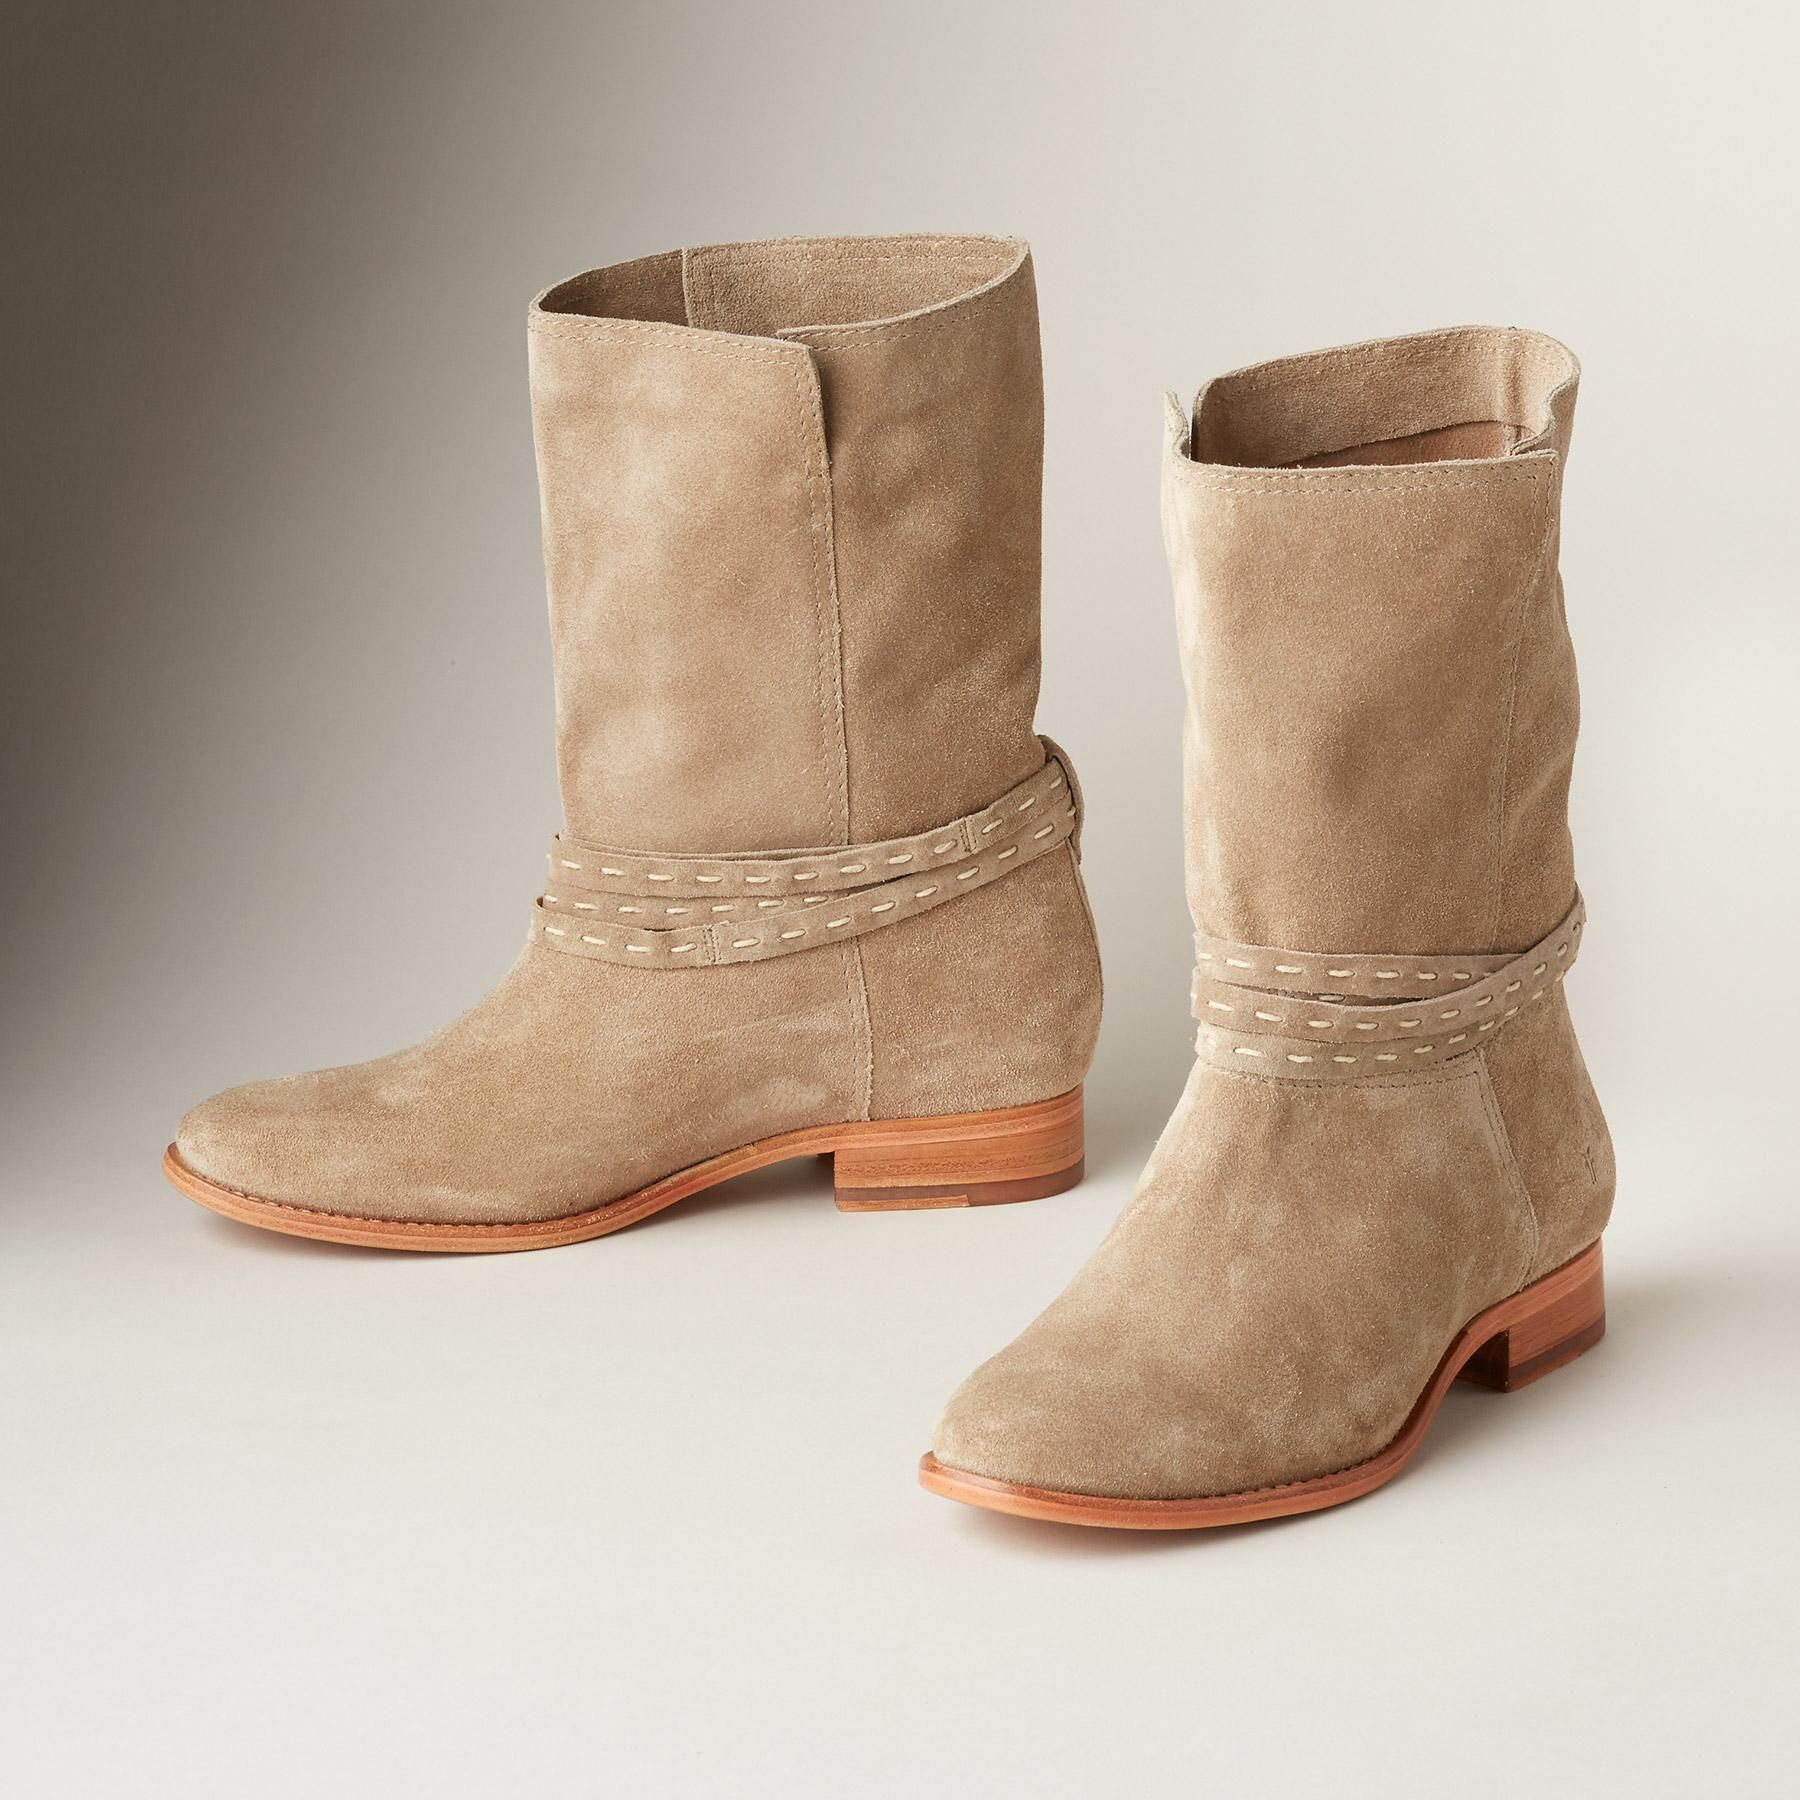 CARA PICKSTITCH MID HEIGHT BOOTS A classic look by Frye